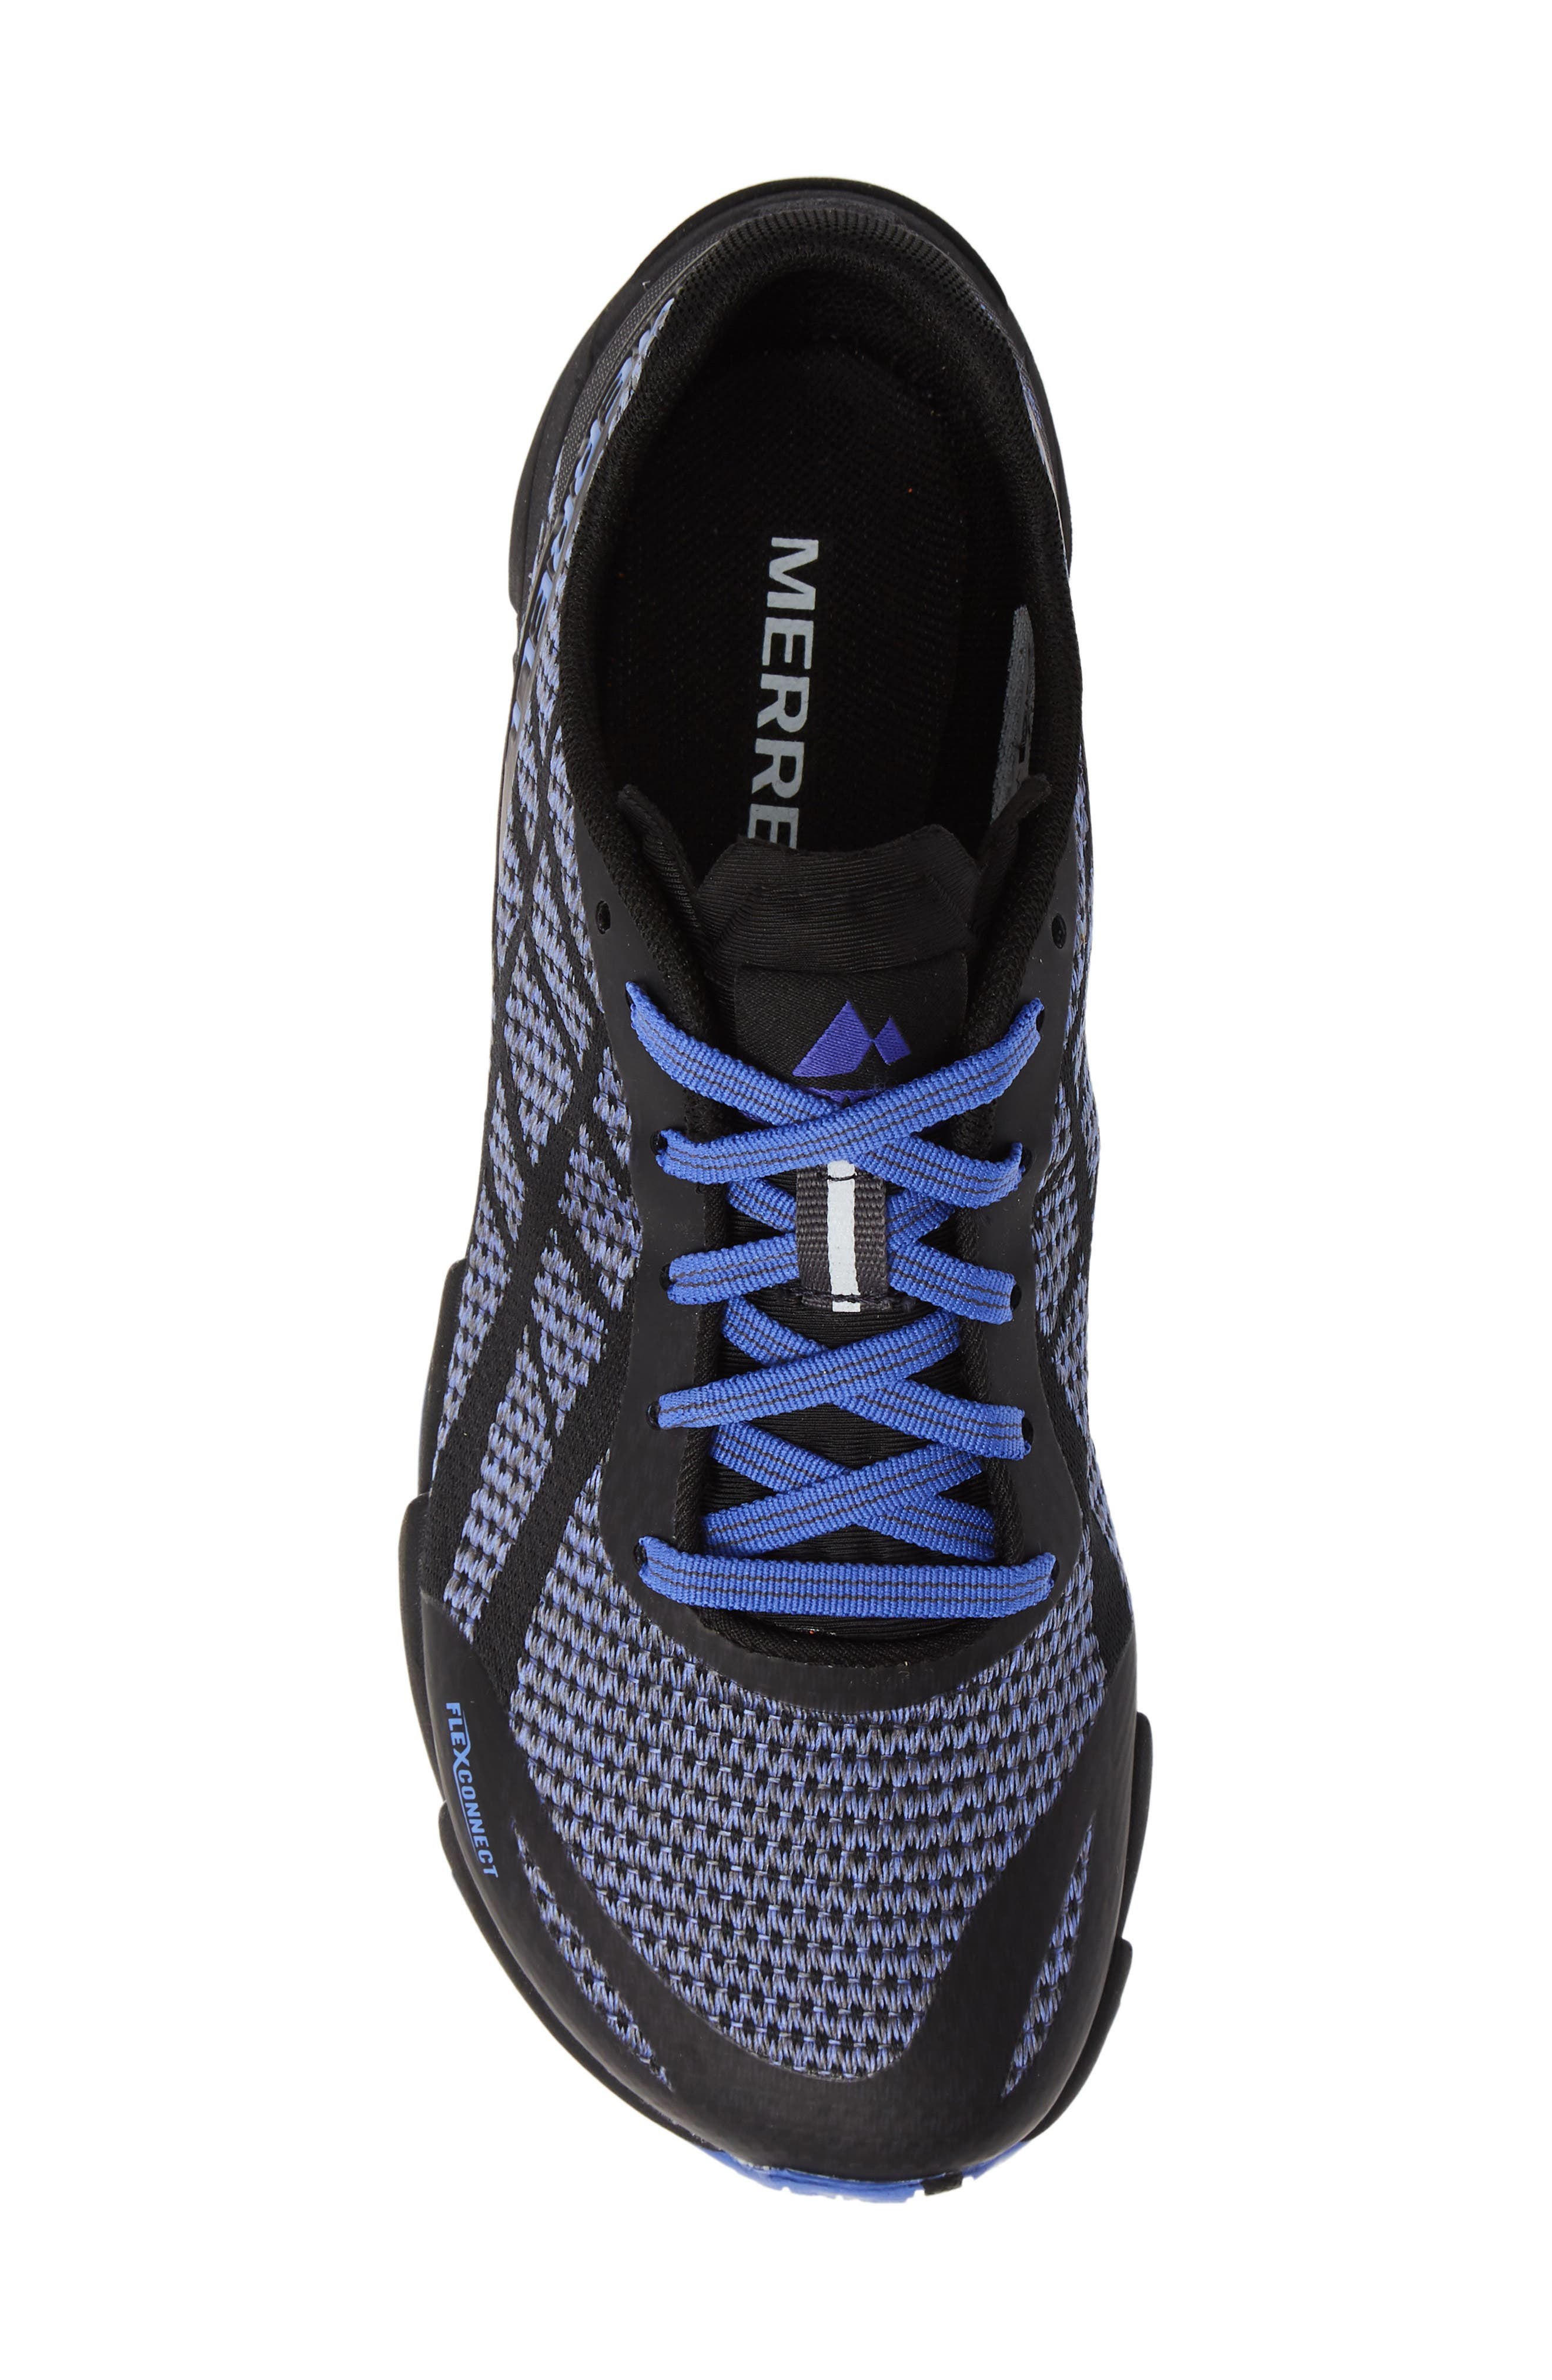 MERRELL,                             Bare Access Flex Shield Lace-Up Sneaker,                             Alternate thumbnail 5, color,                             BLACK AND WHITE FABRIC